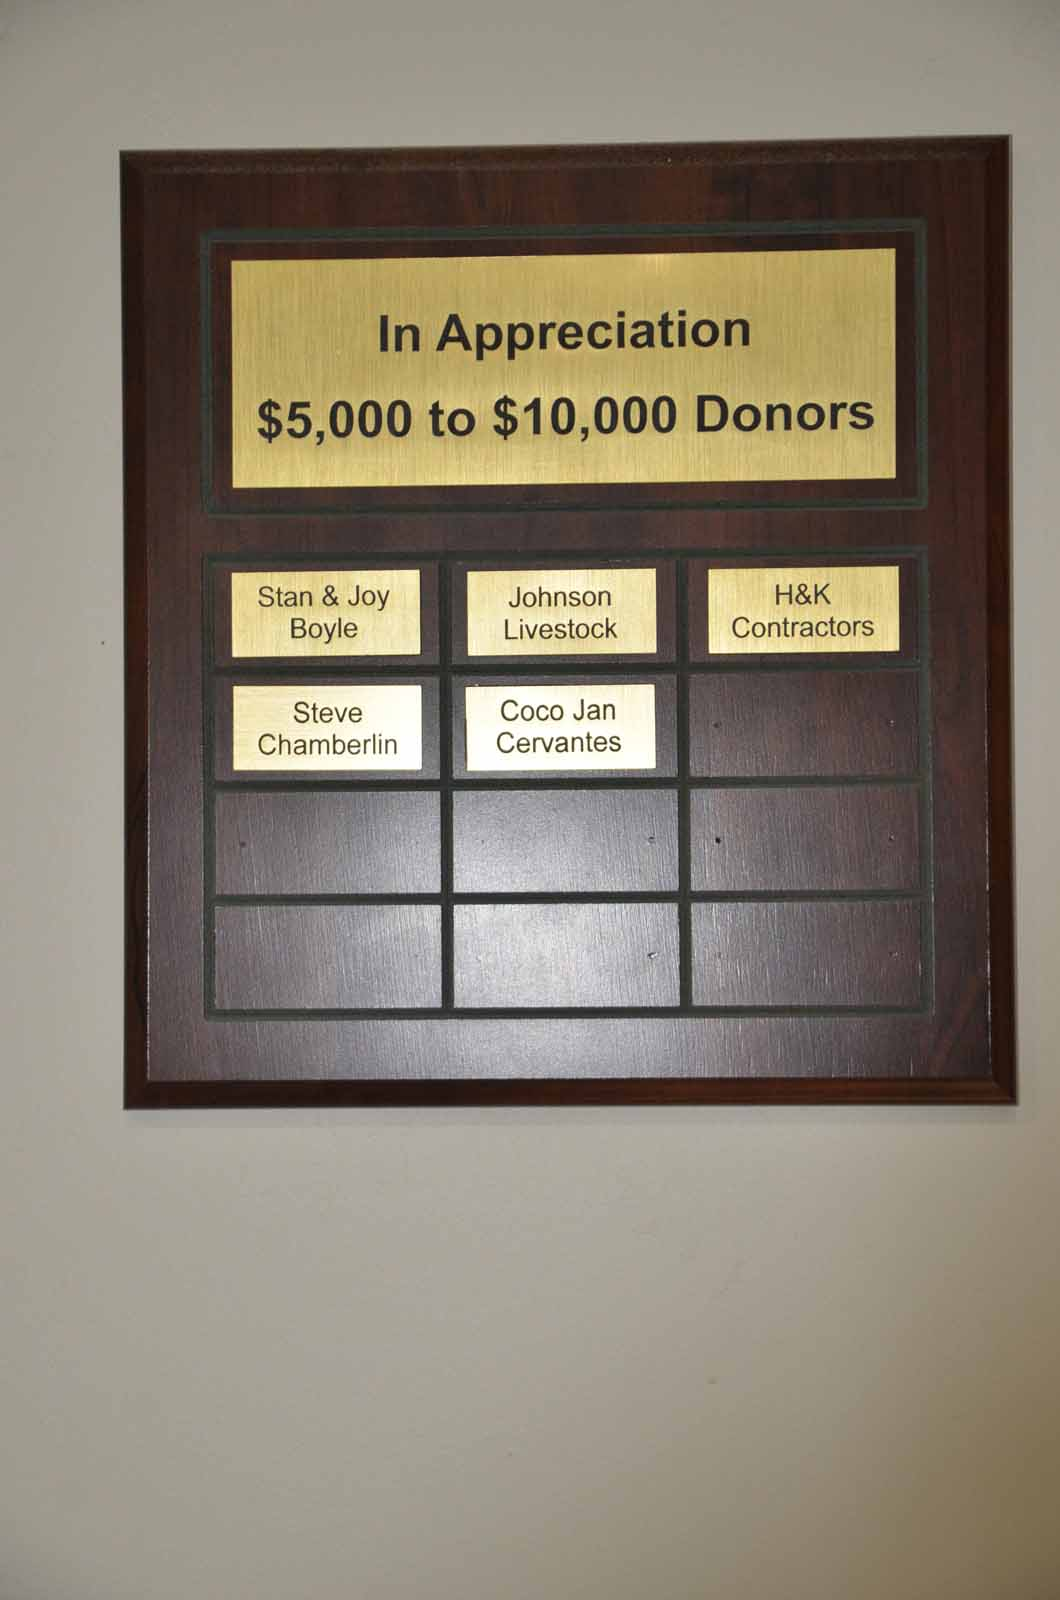 donor-plaque-5-10-thousand